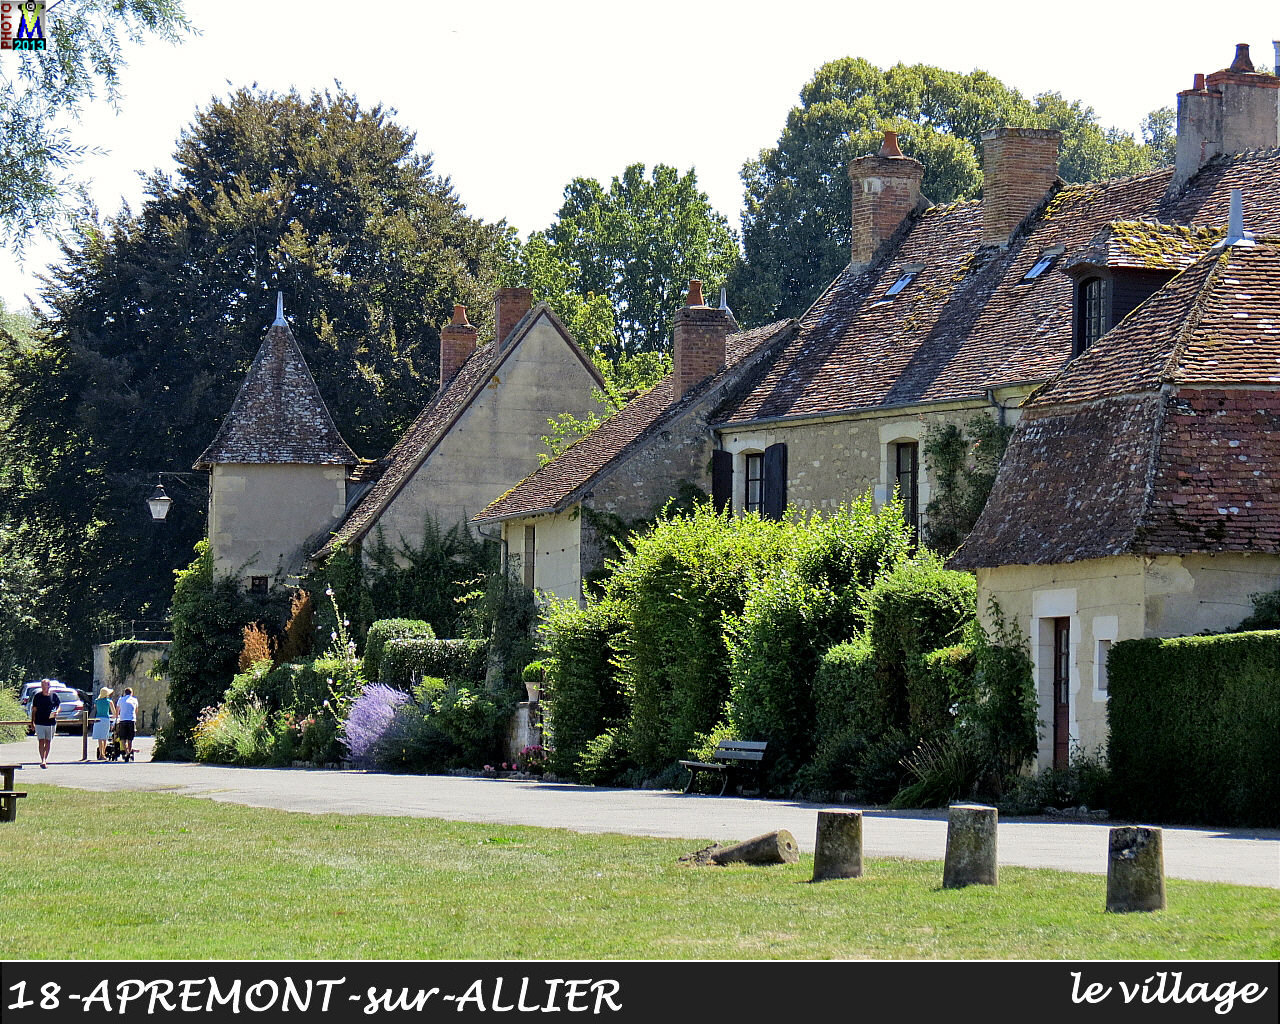 18APREMONT-ALLIER_village_134.jpg